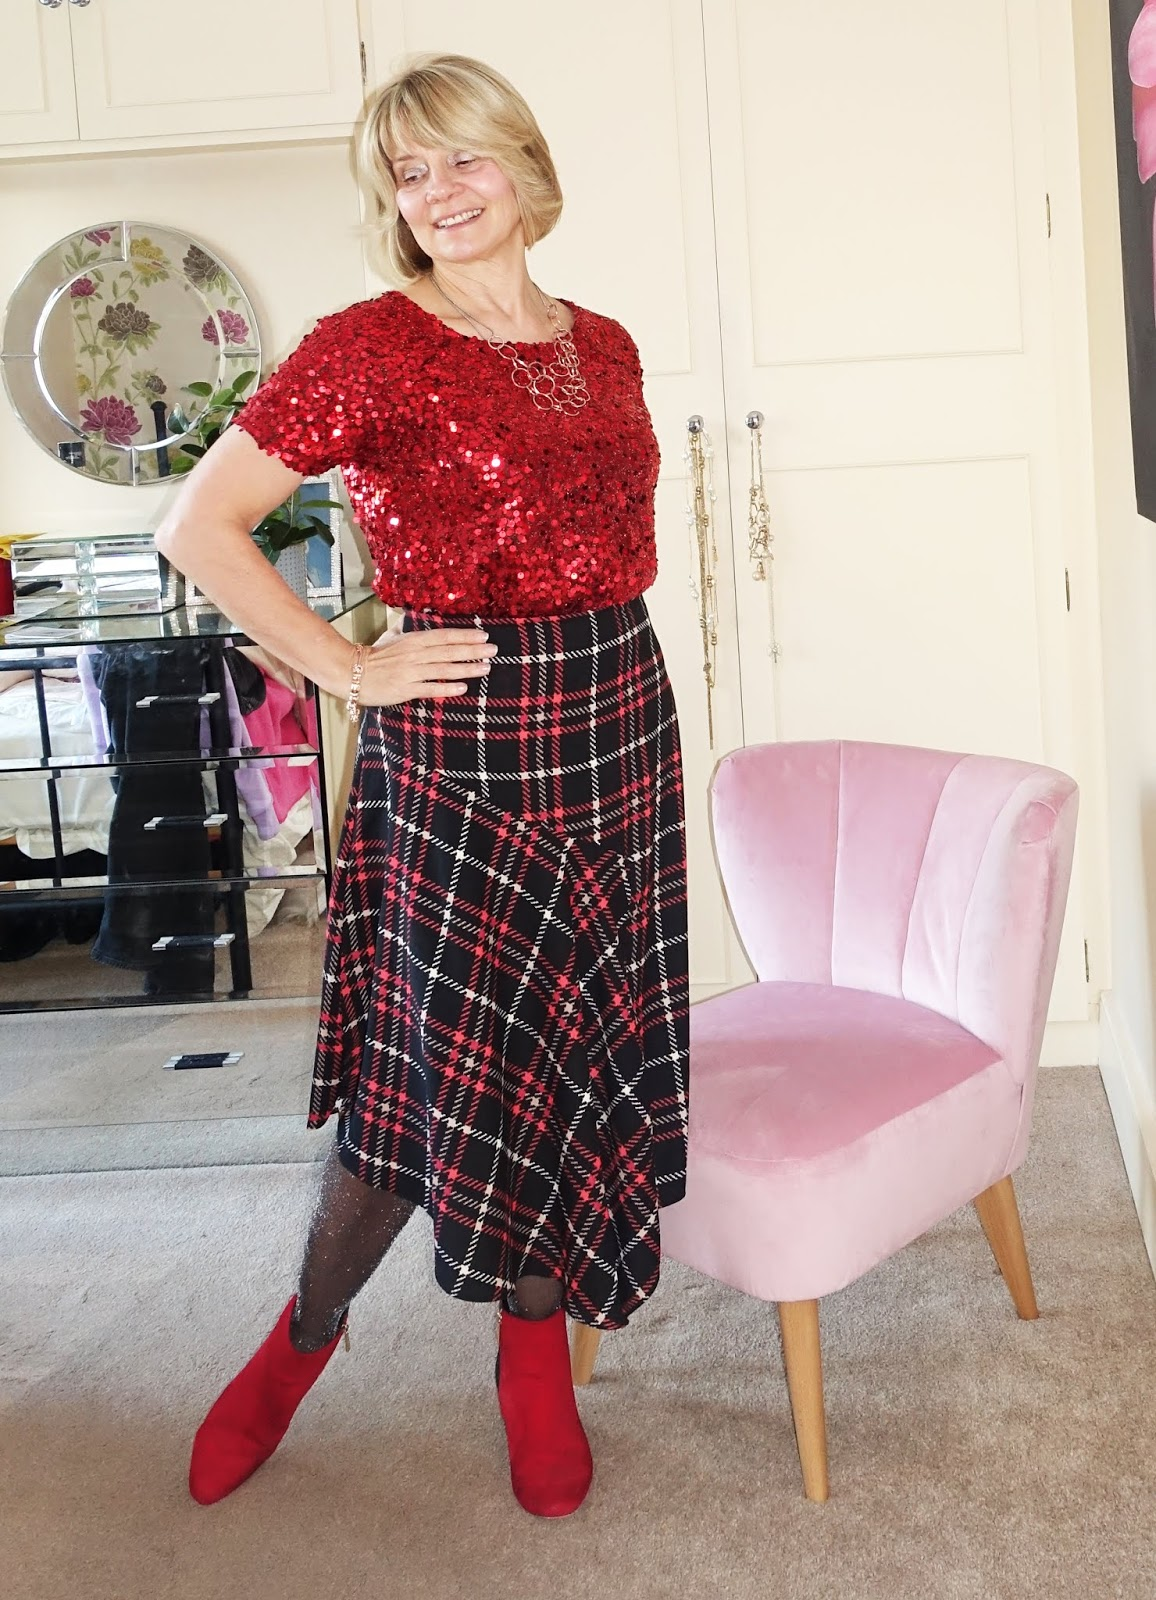 Style blogger Gail Hanlon from Is This Mutton in red sequin top, asymmetric plaid skirt and red and black boots